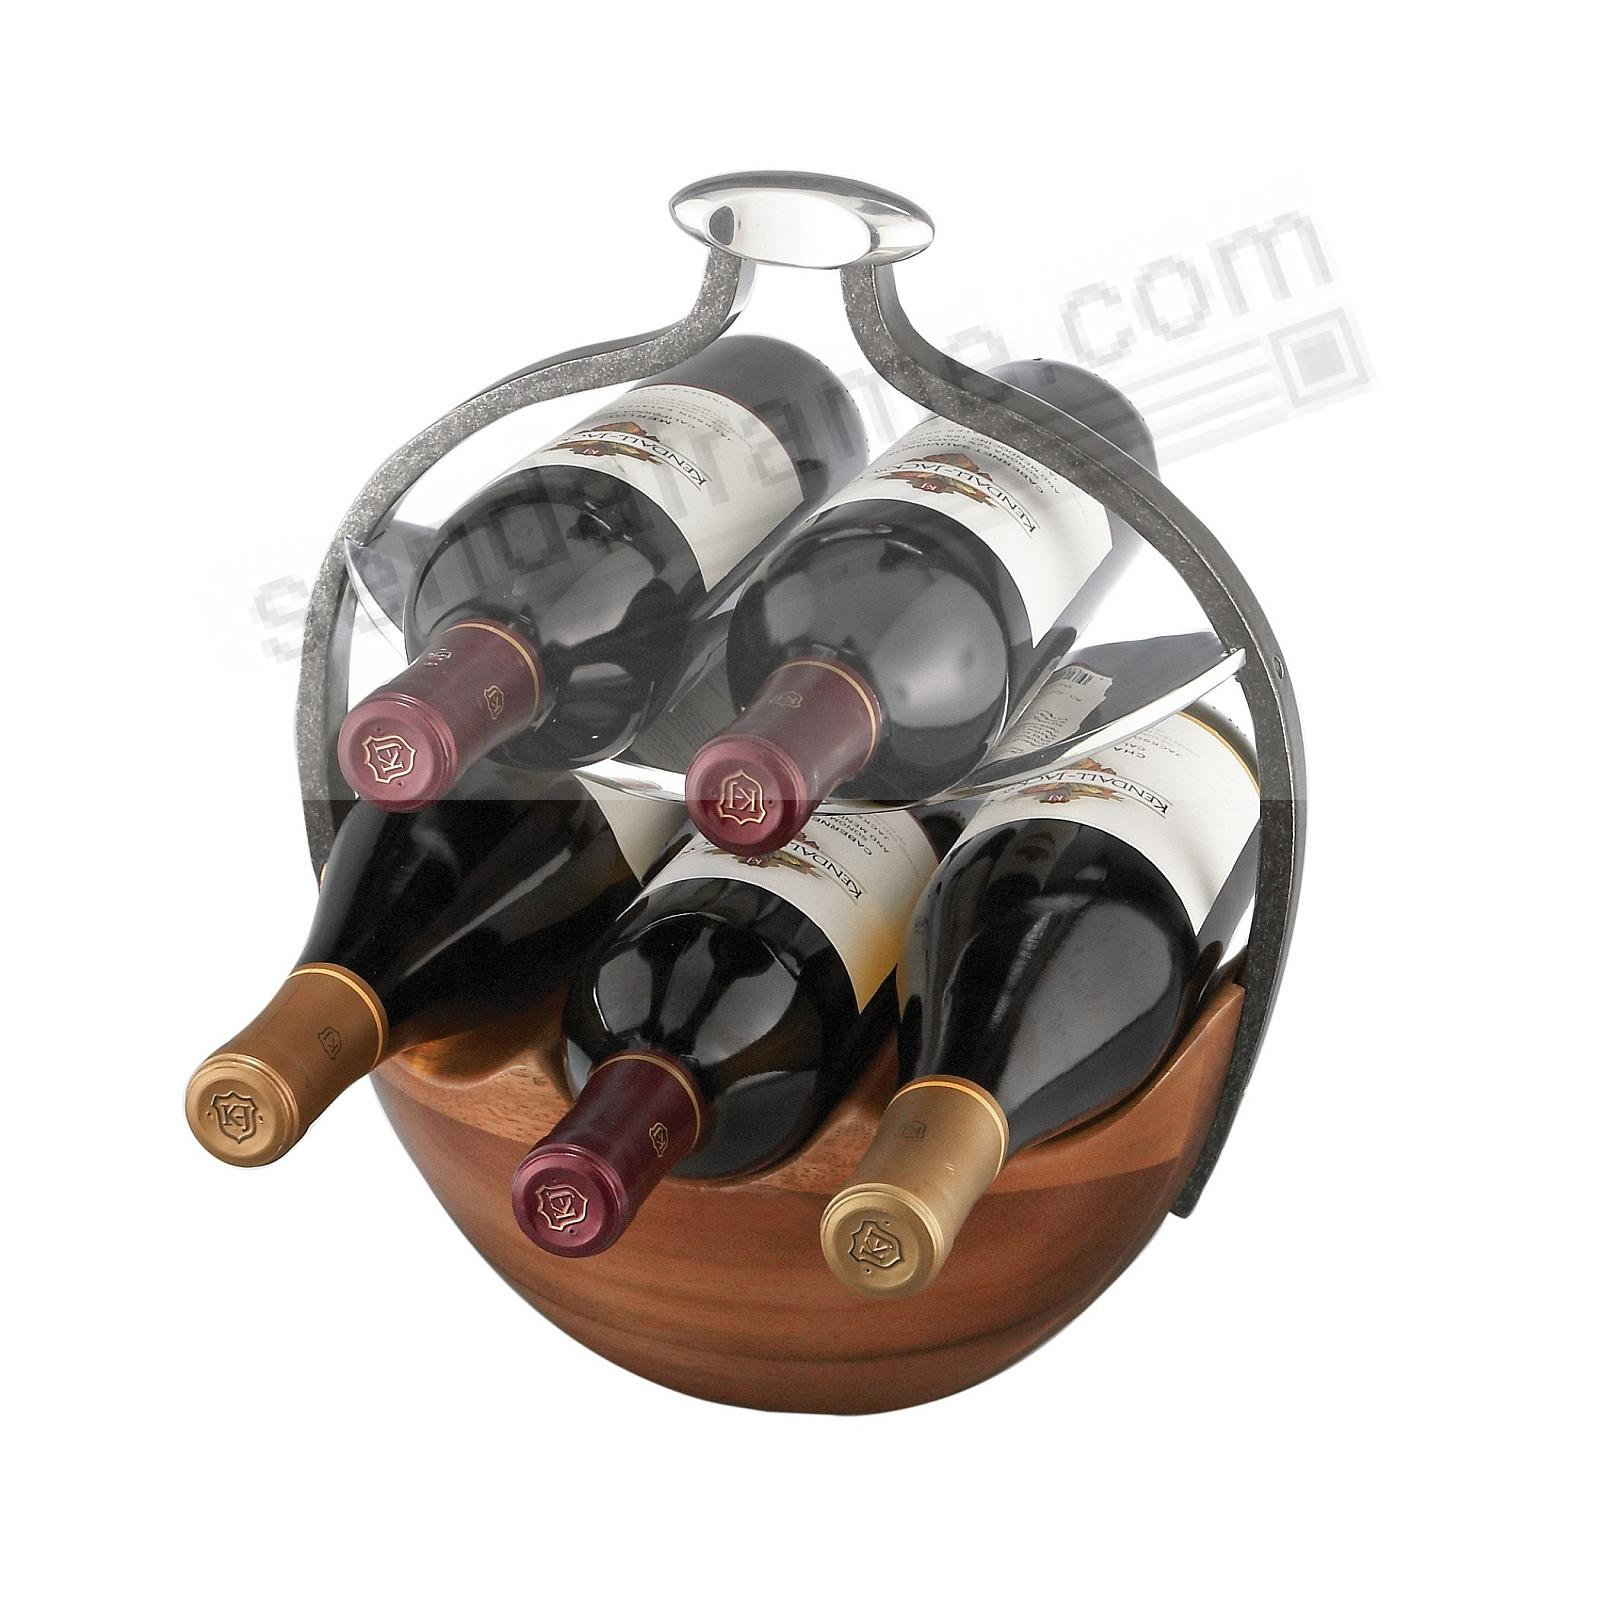 The Original ANVIL WINE BASKET crafted by Nambe®